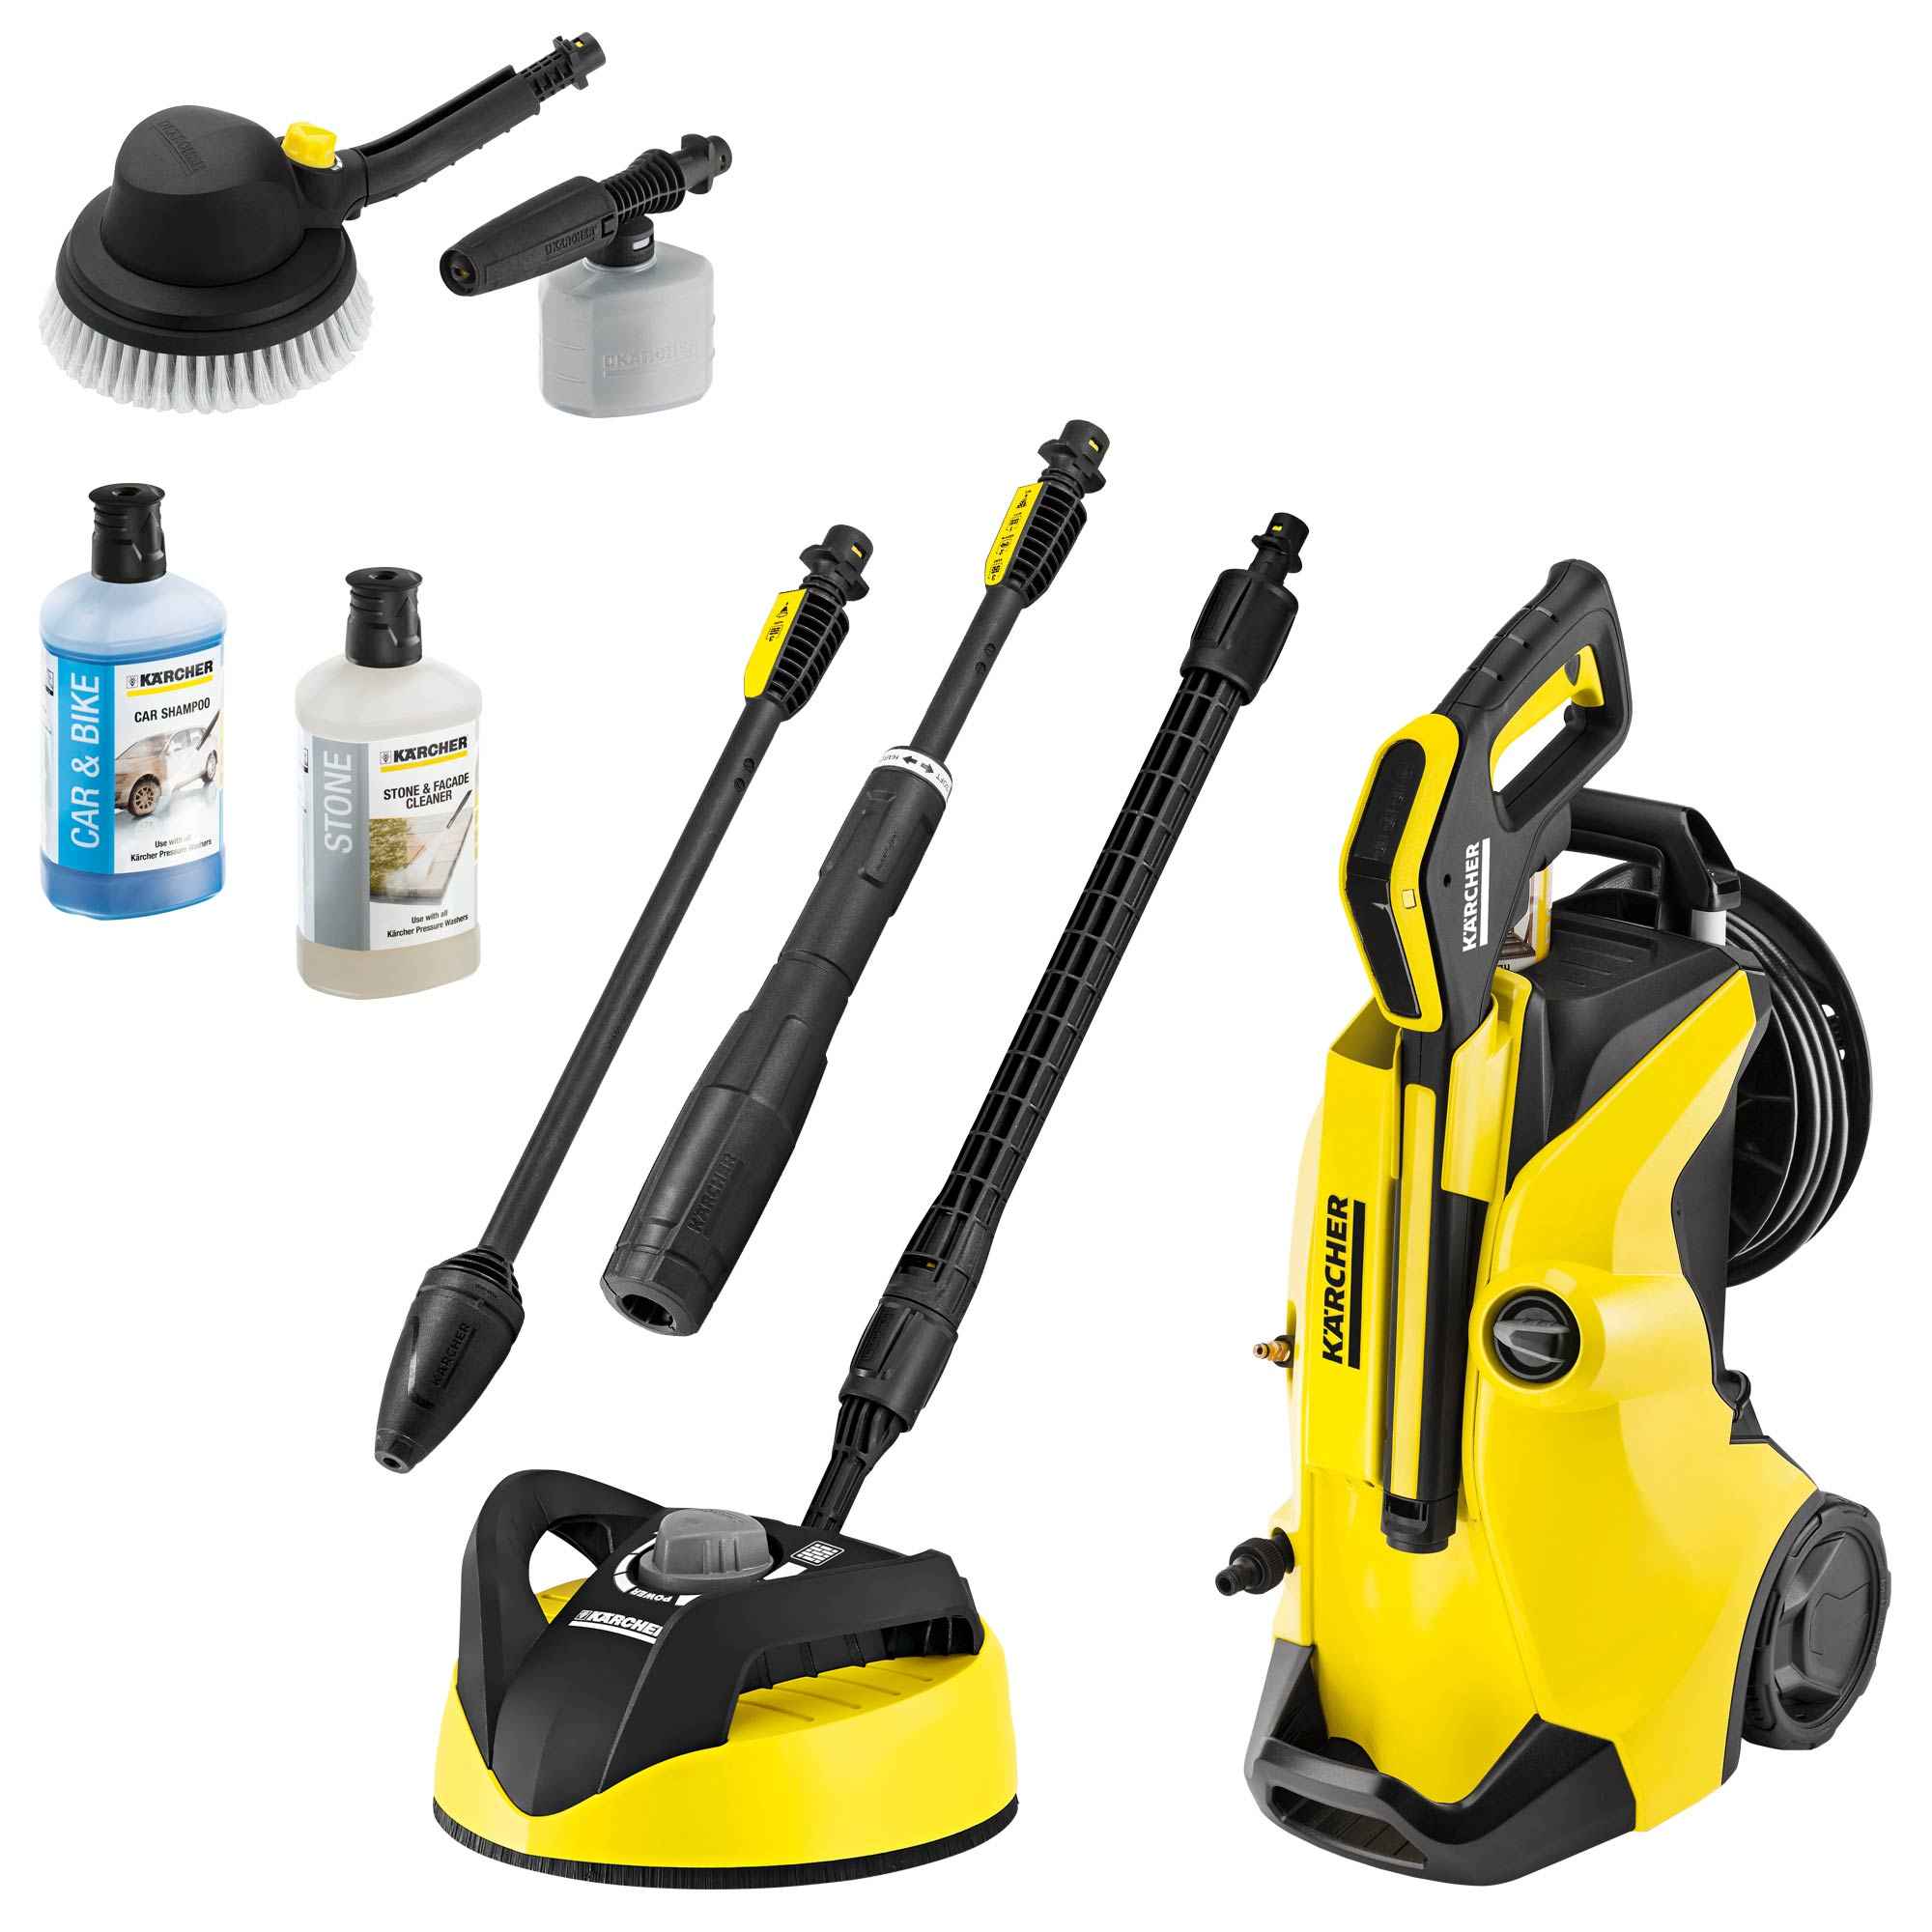 karcher 13241090 k4 premium full control car home